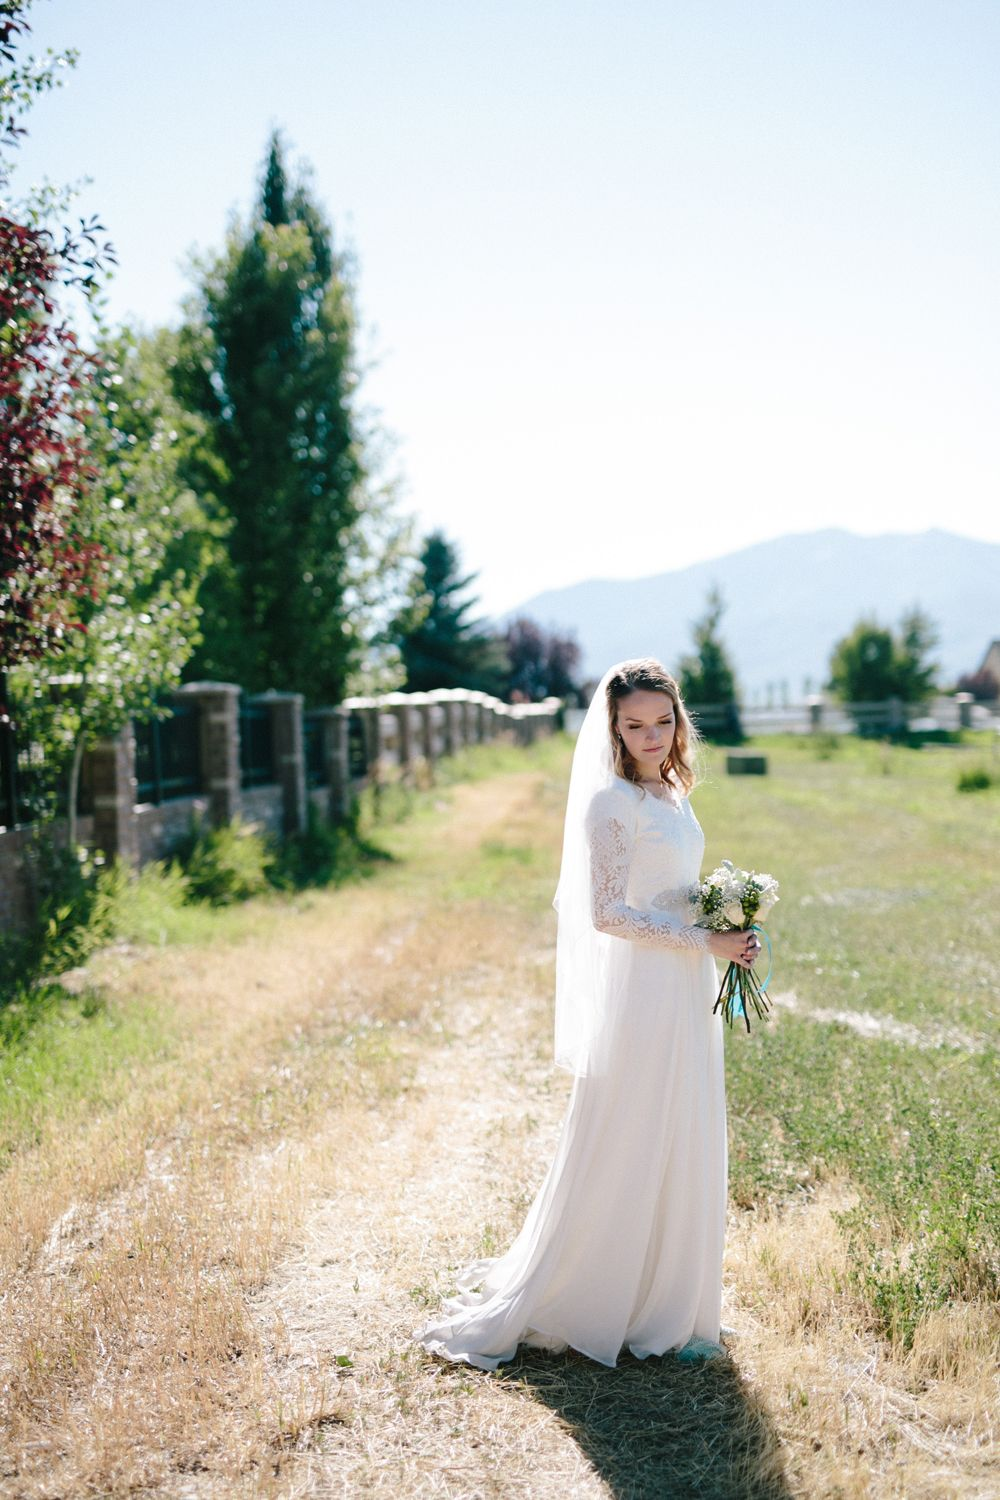 modest wedding dress with long sleeves from alta moda.